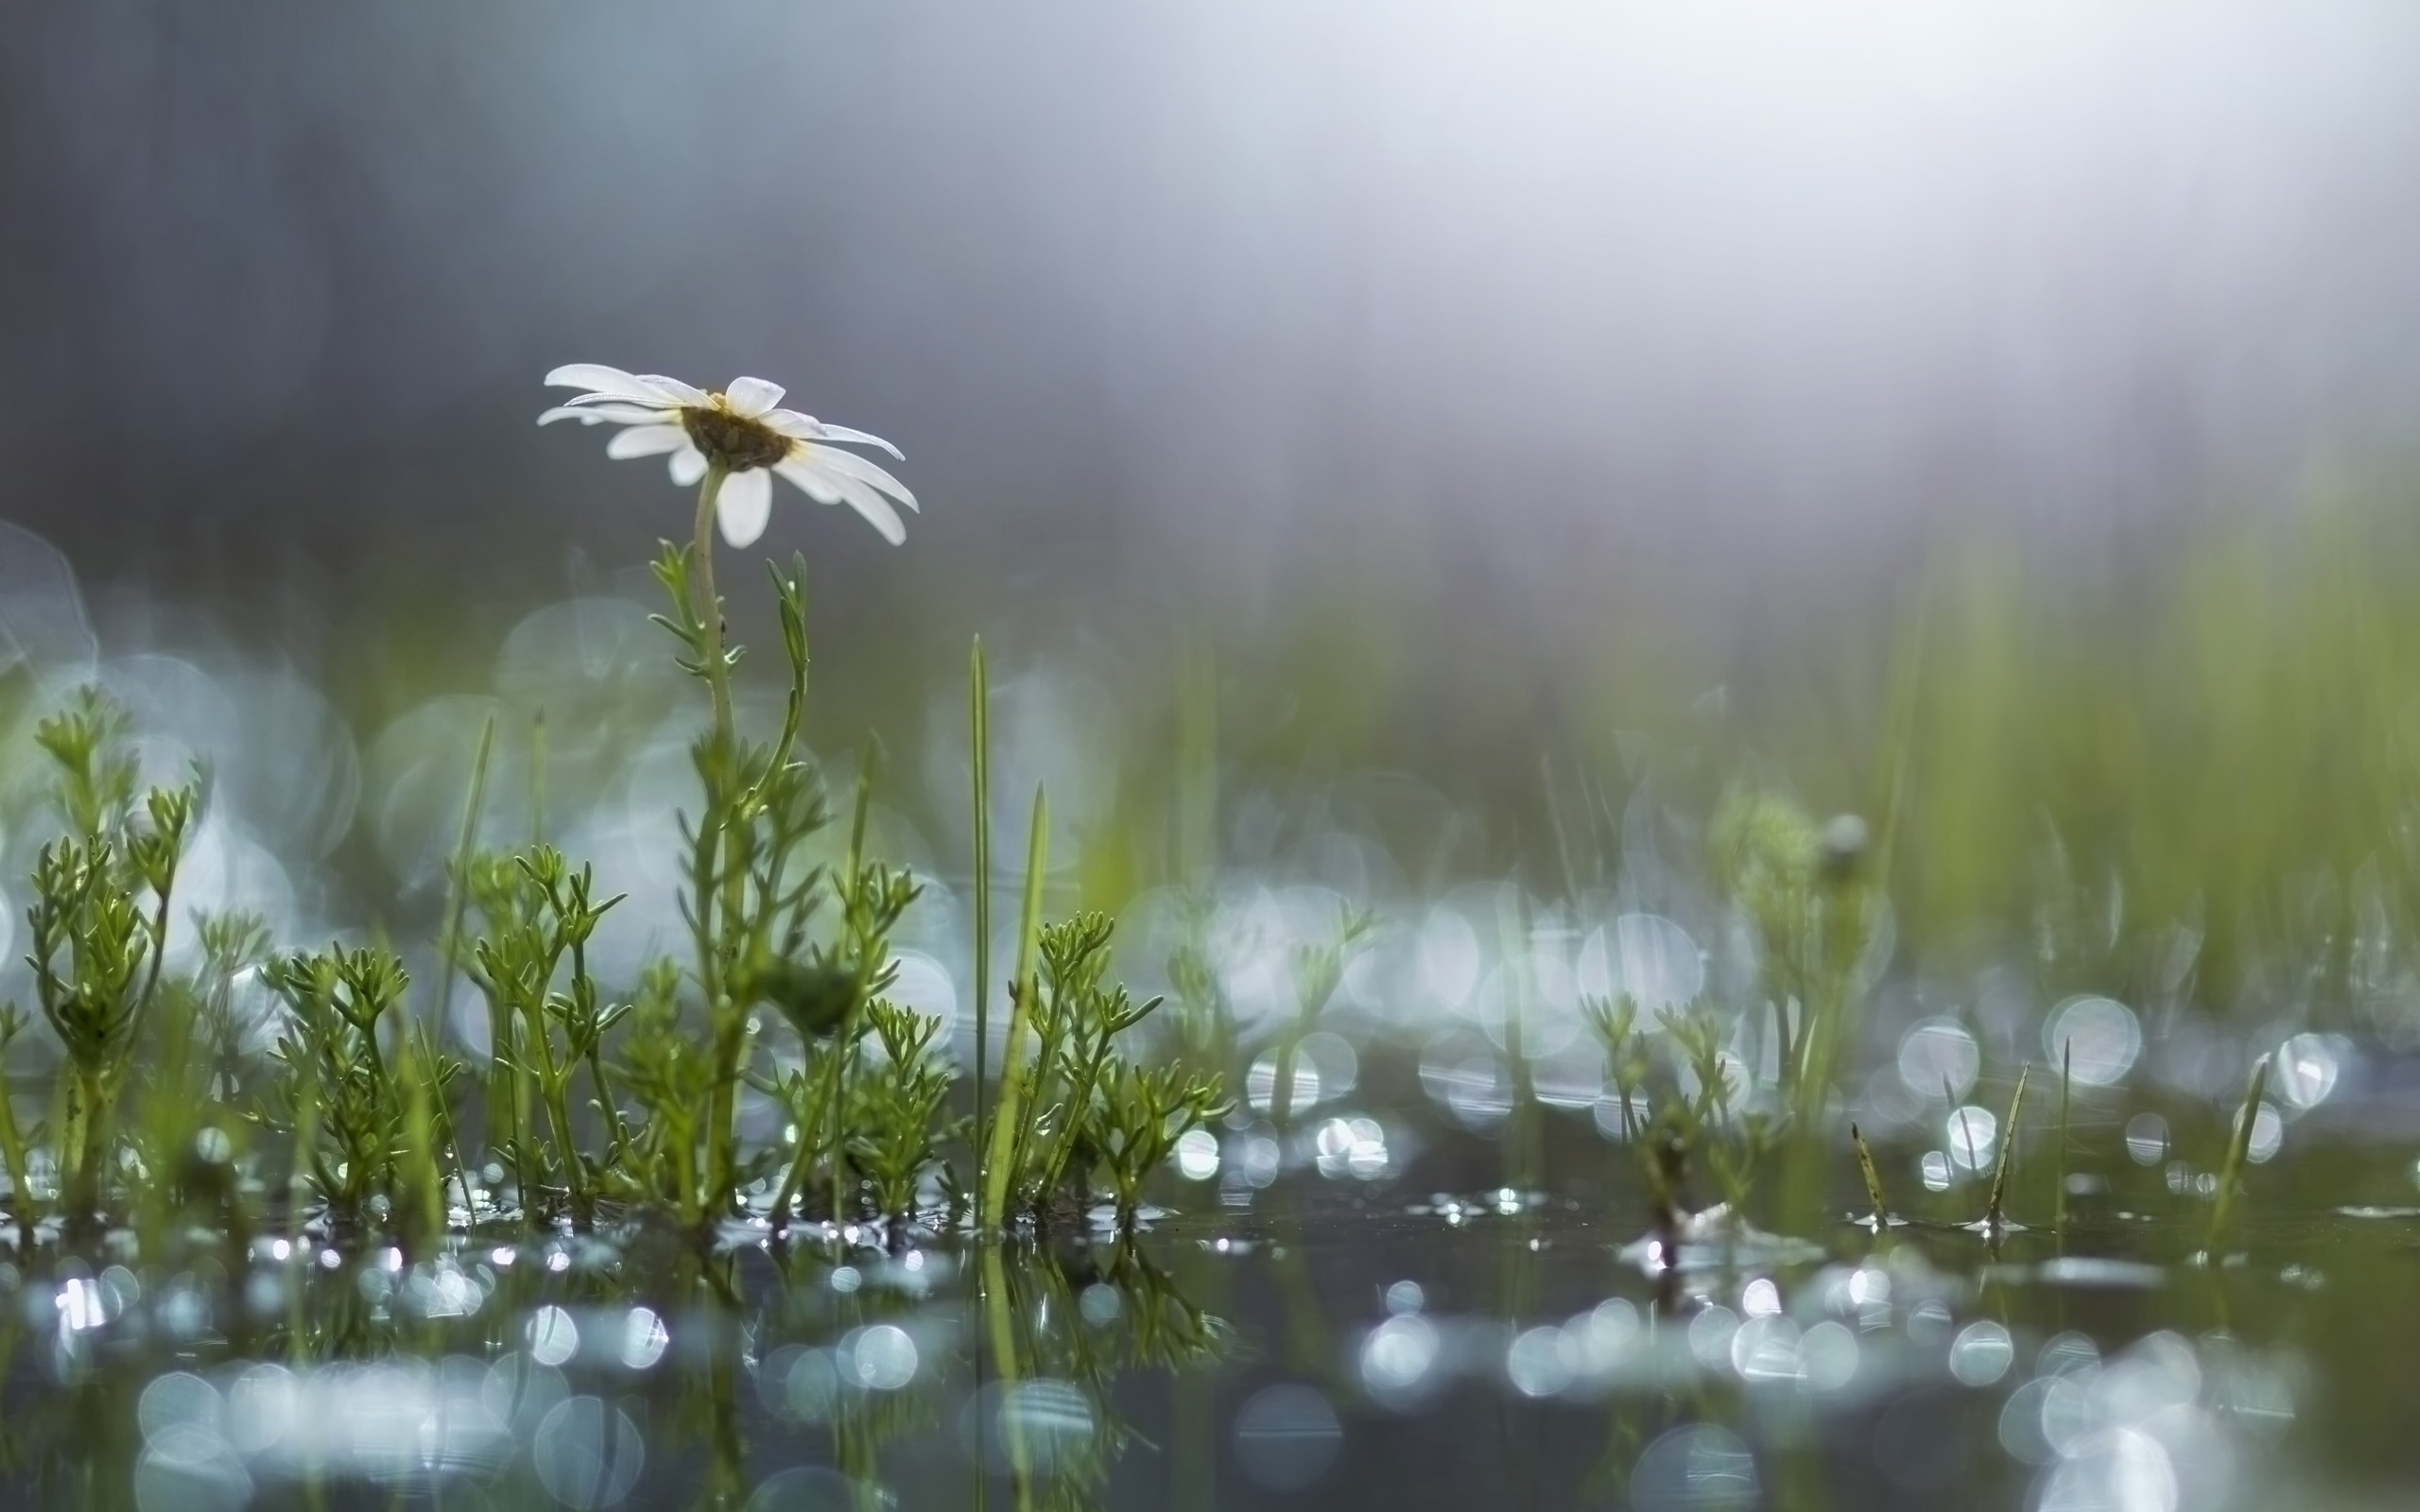 Fall Daisy Wallpaper Grass White Flower Daisy Puddle After The Rain